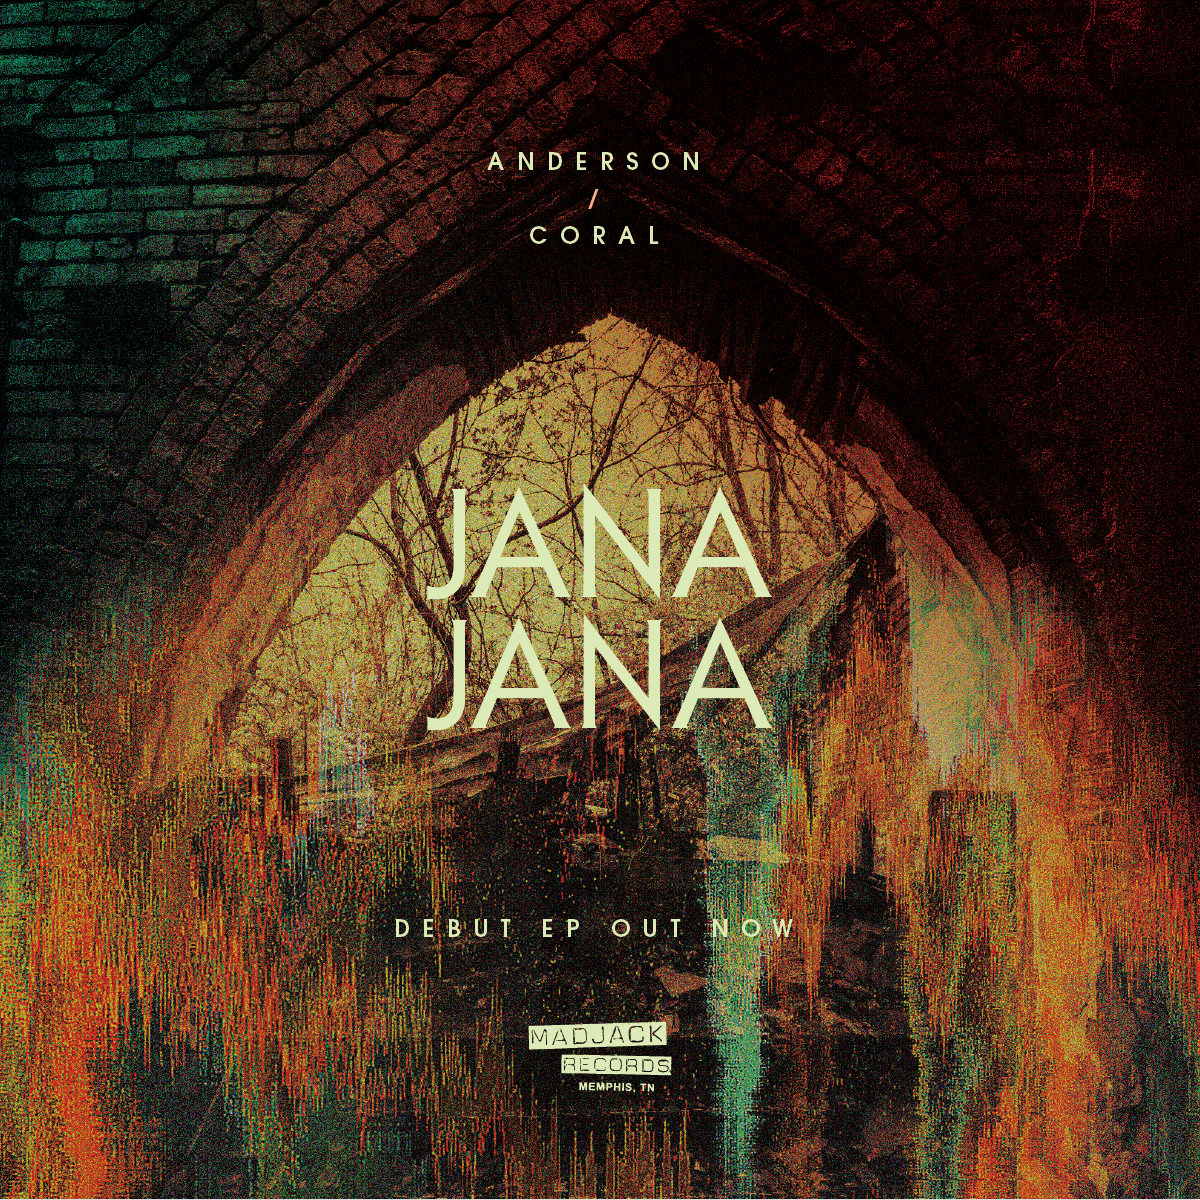 JANA-AnersonCoral-IG-OutNow.png